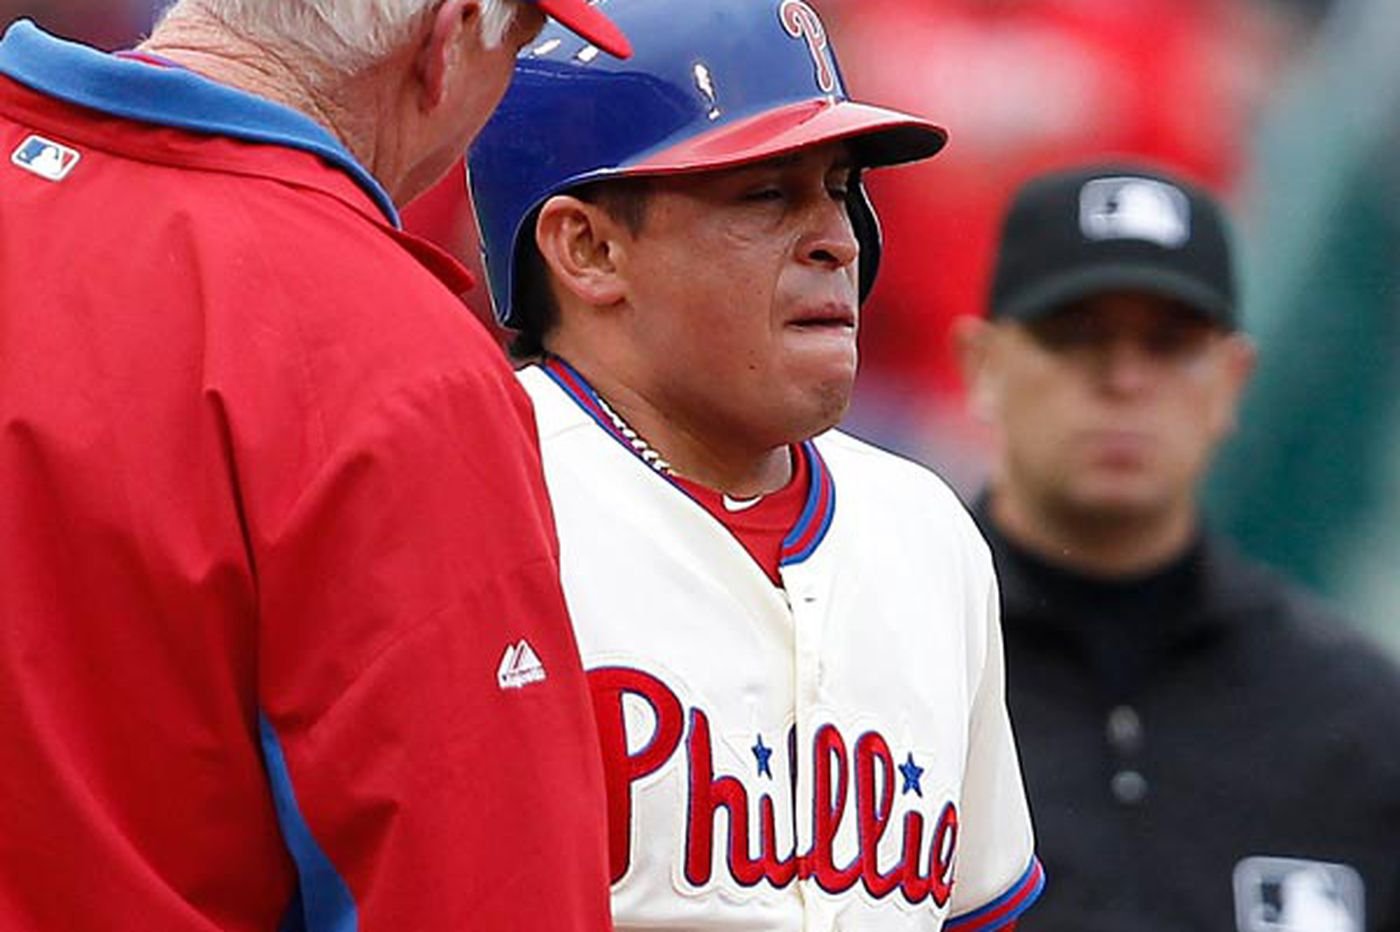 Phillies Notes: Carlos Ruiz happy with rehab progress